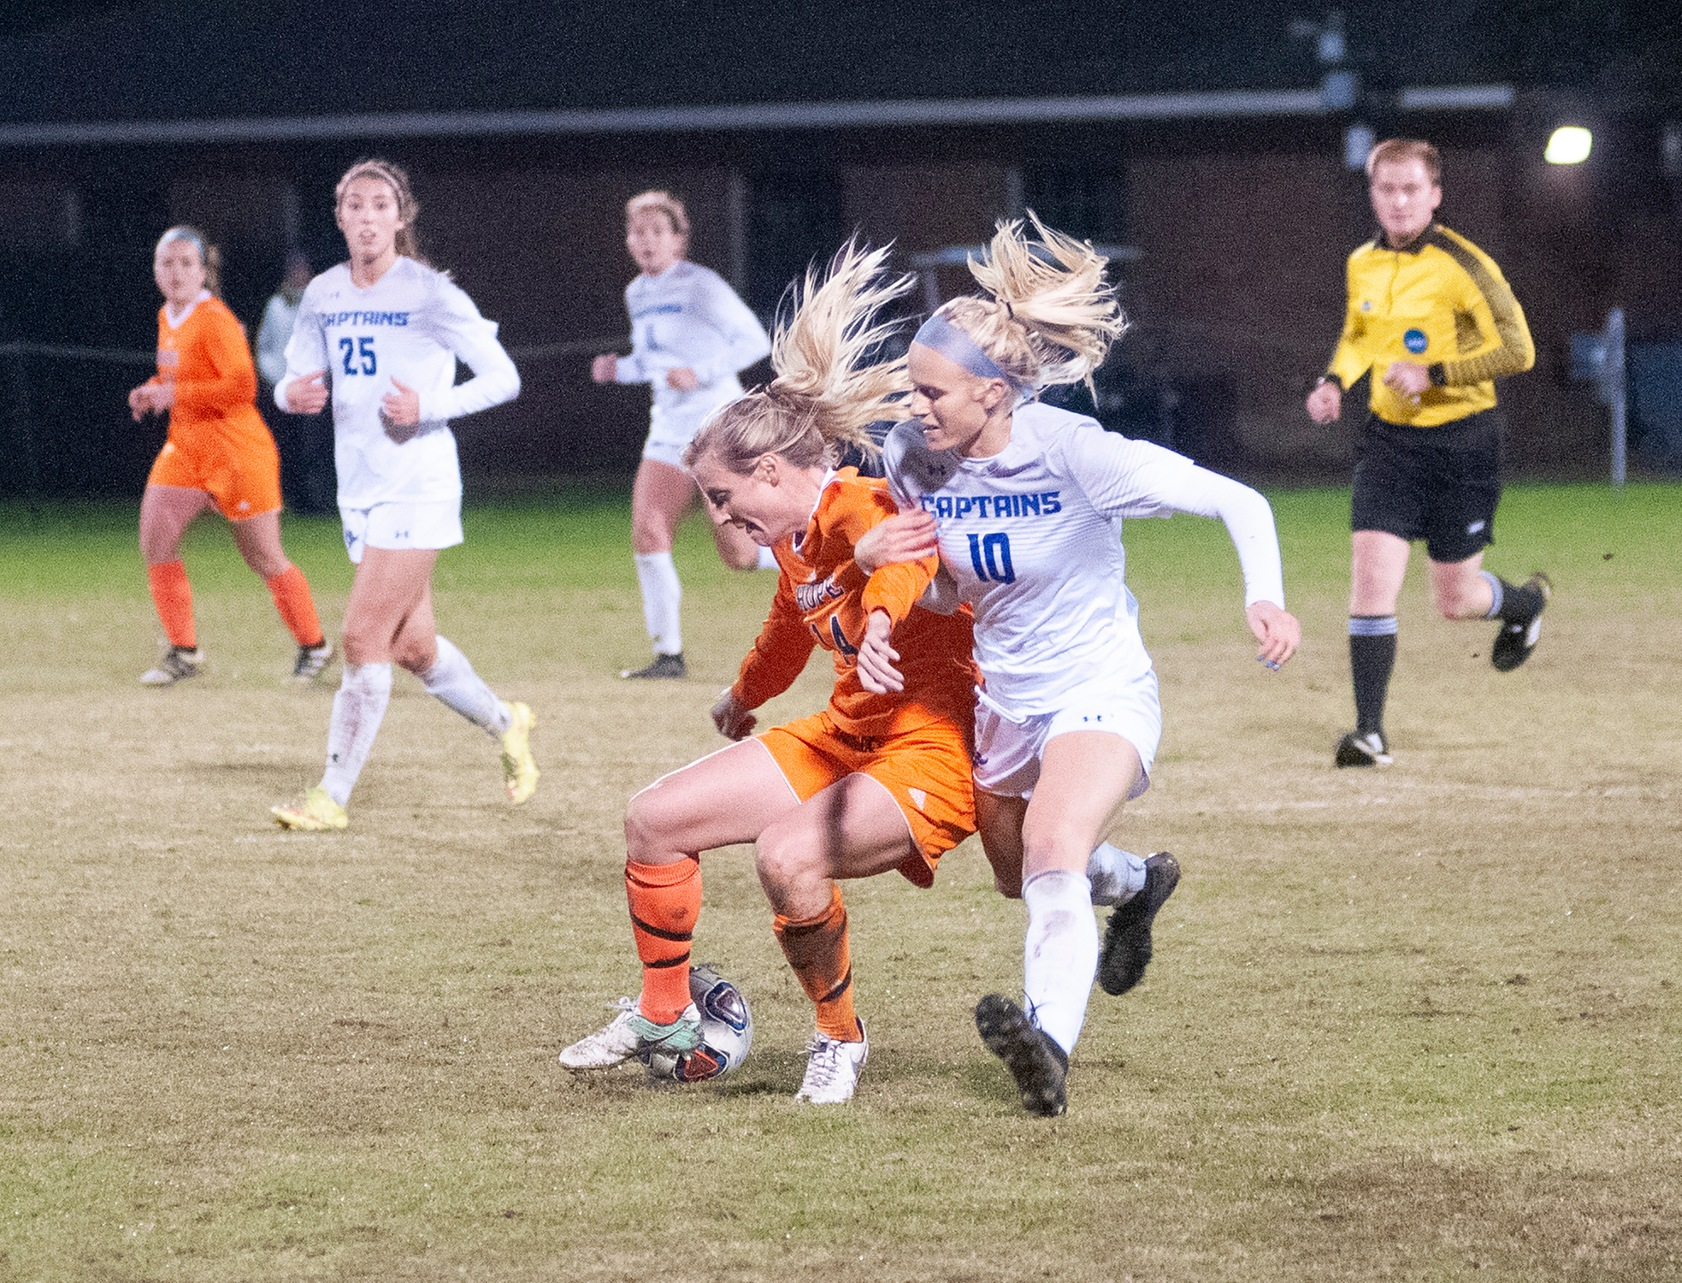 Kristen Marsman battles for a loose ball